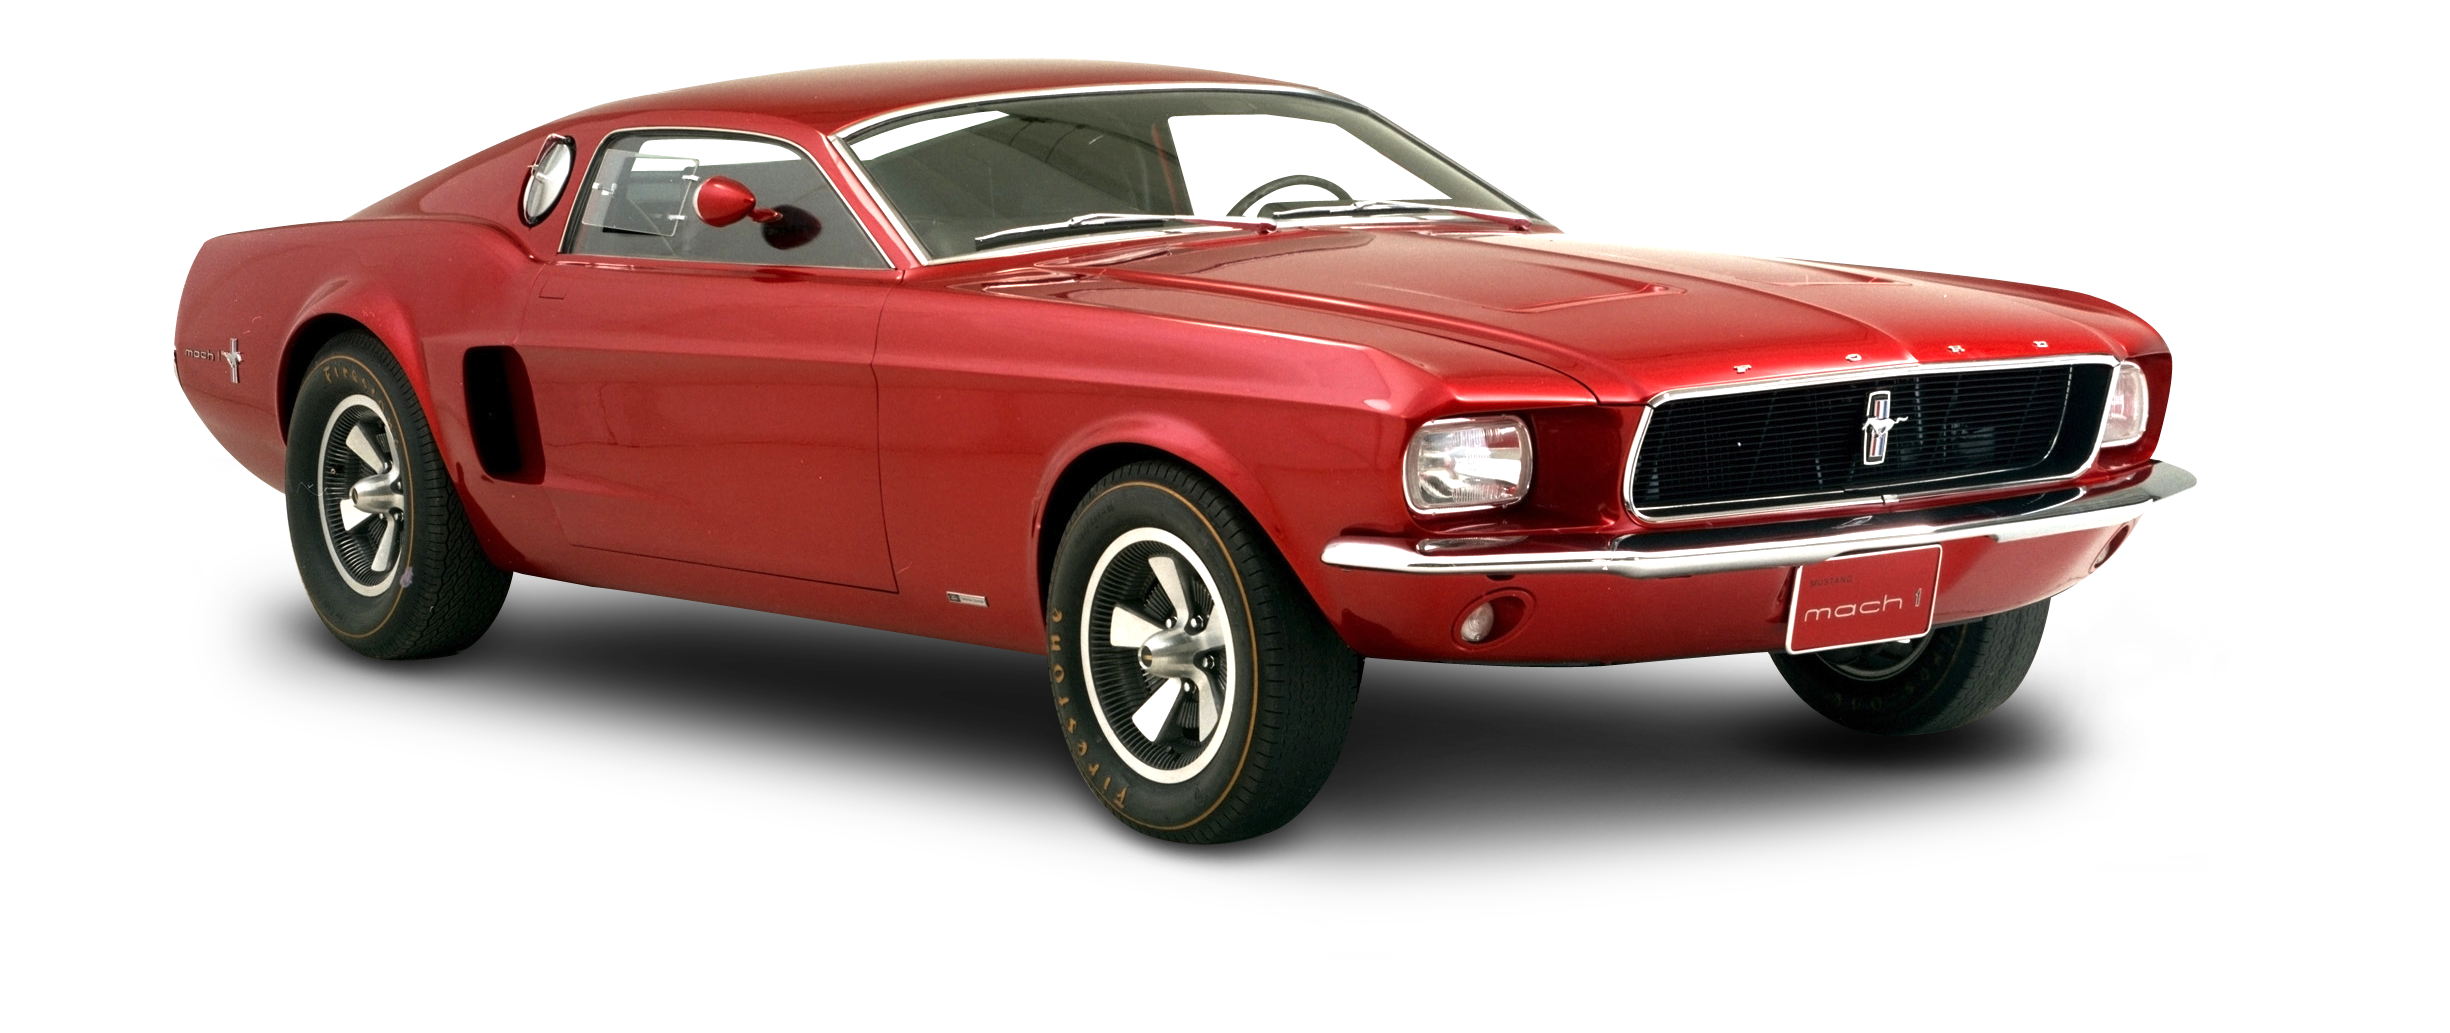 Classic mustang car clipart banner freeuse stock Red Ford Mustang Mach Car PNG Image - PurePNG | Free transparent CC0 ... banner freeuse stock